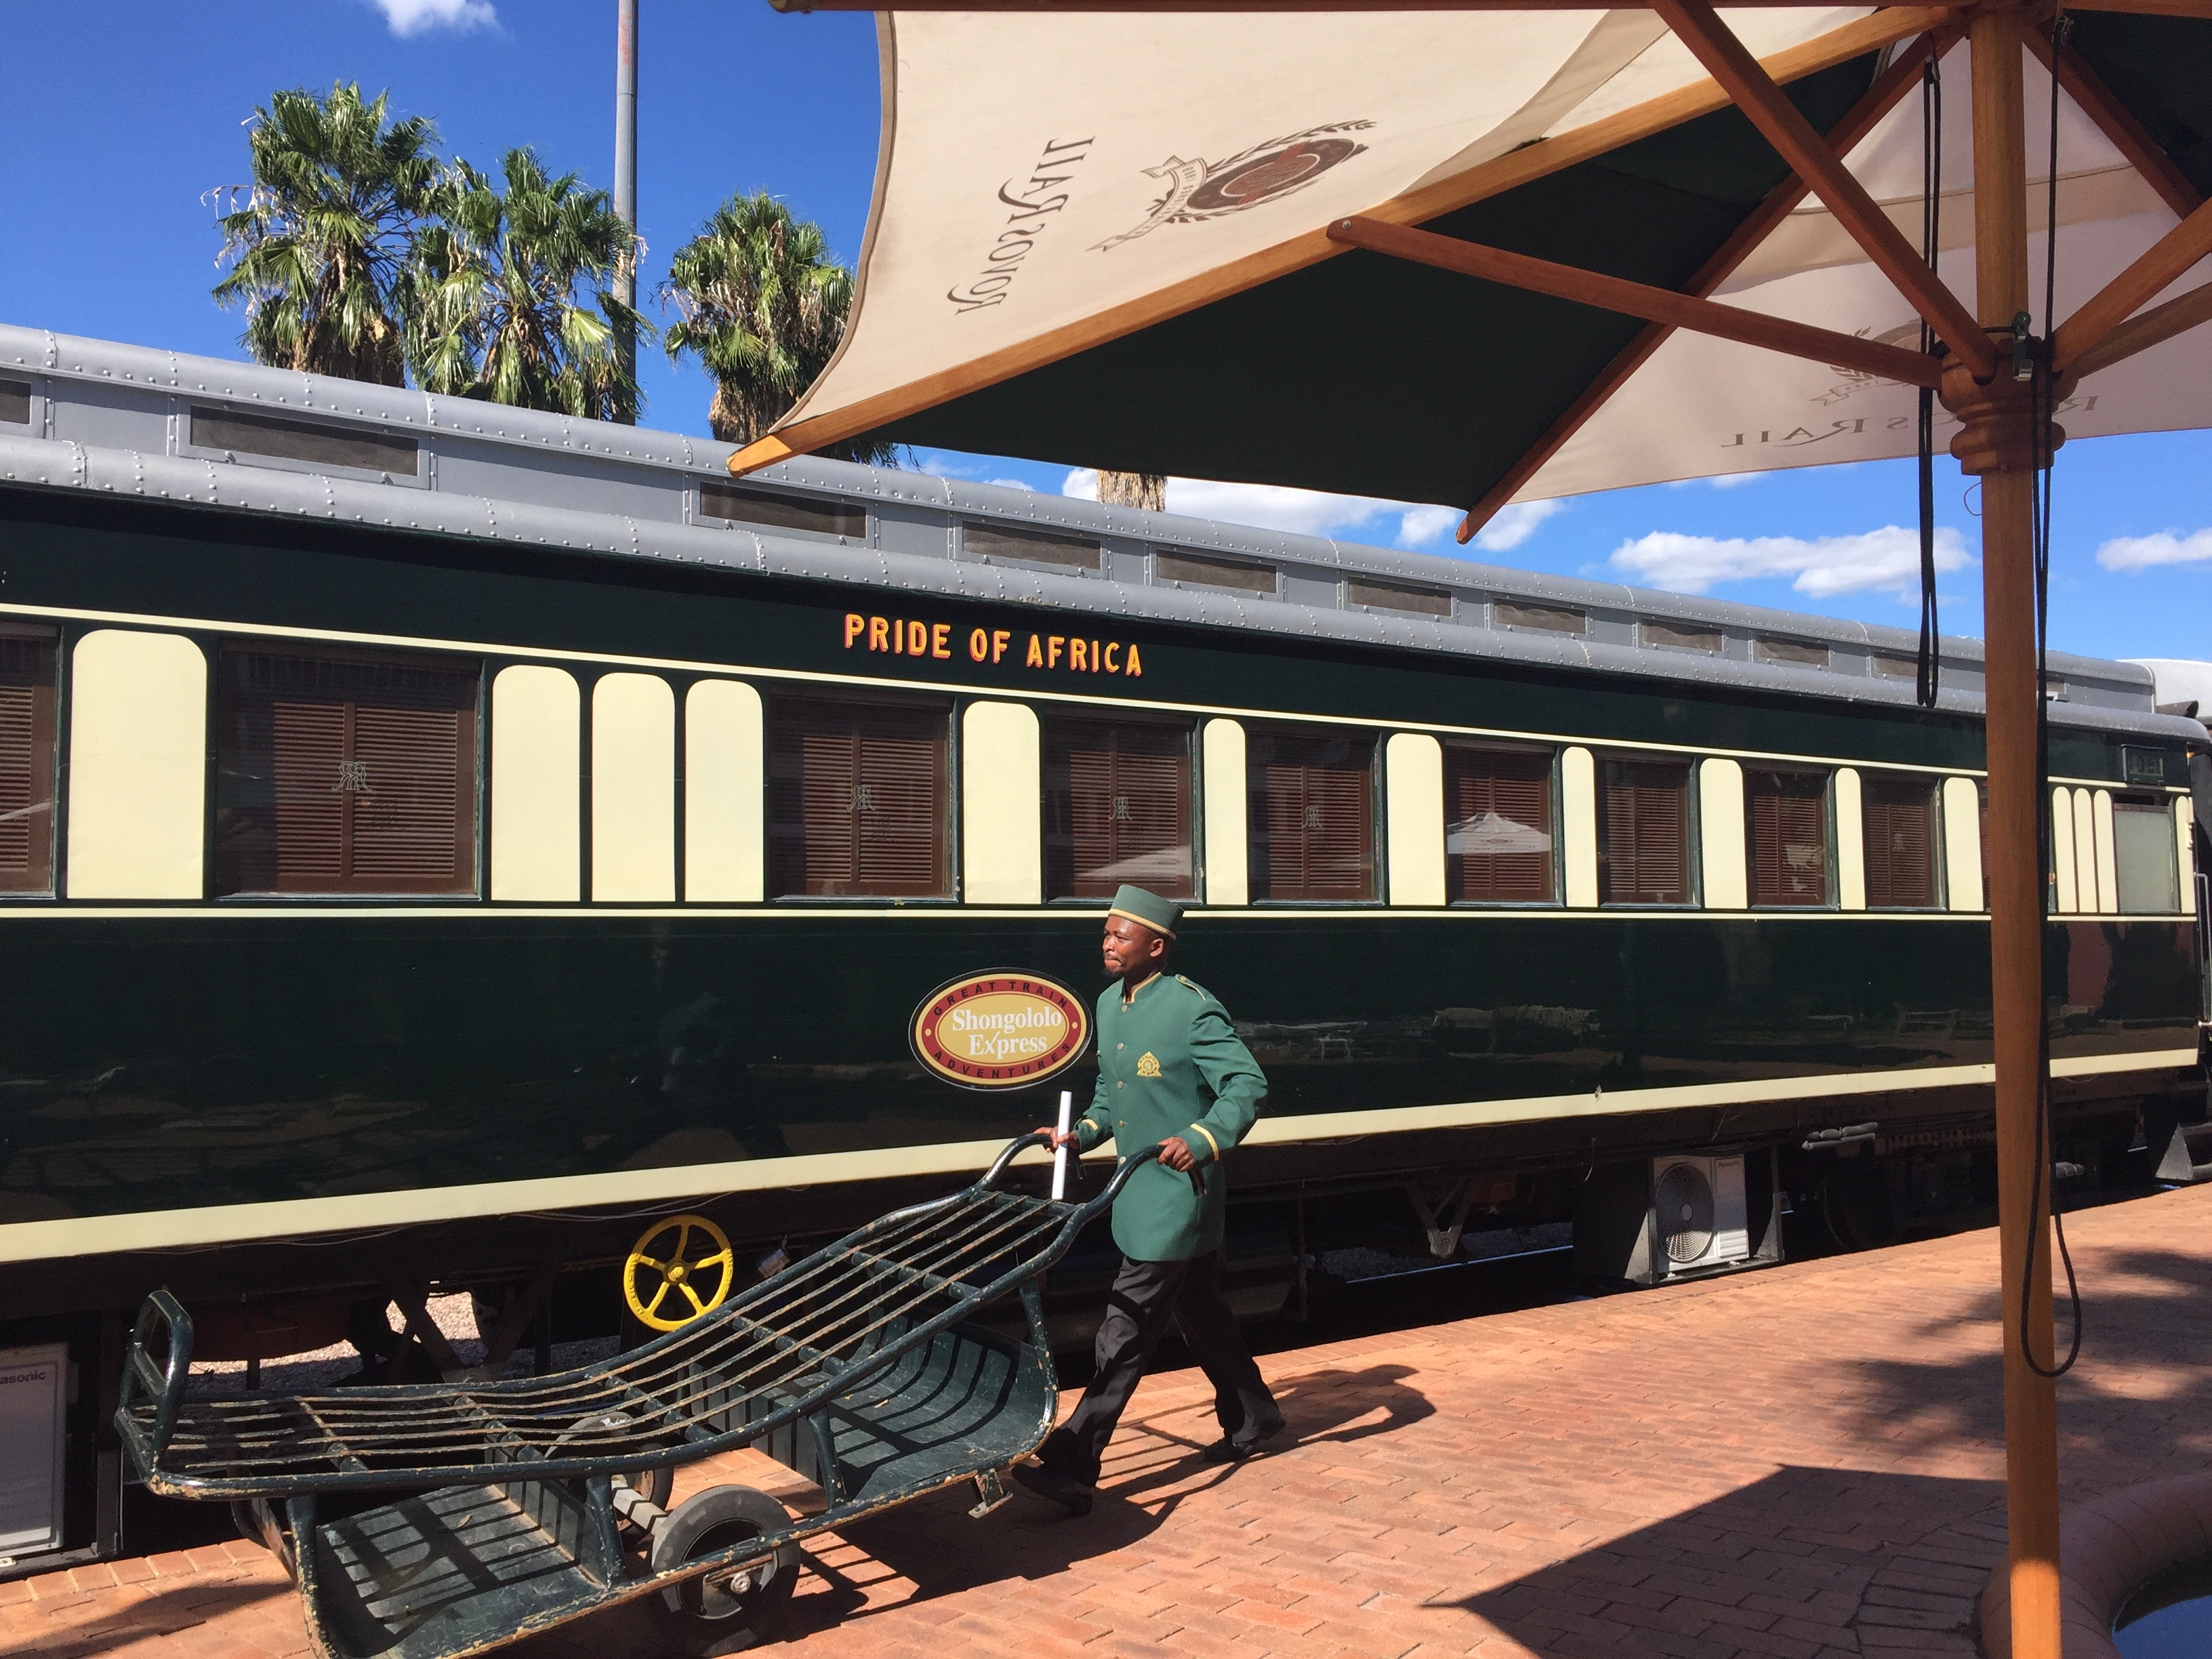 All aboard the Shongololo Express luxury train